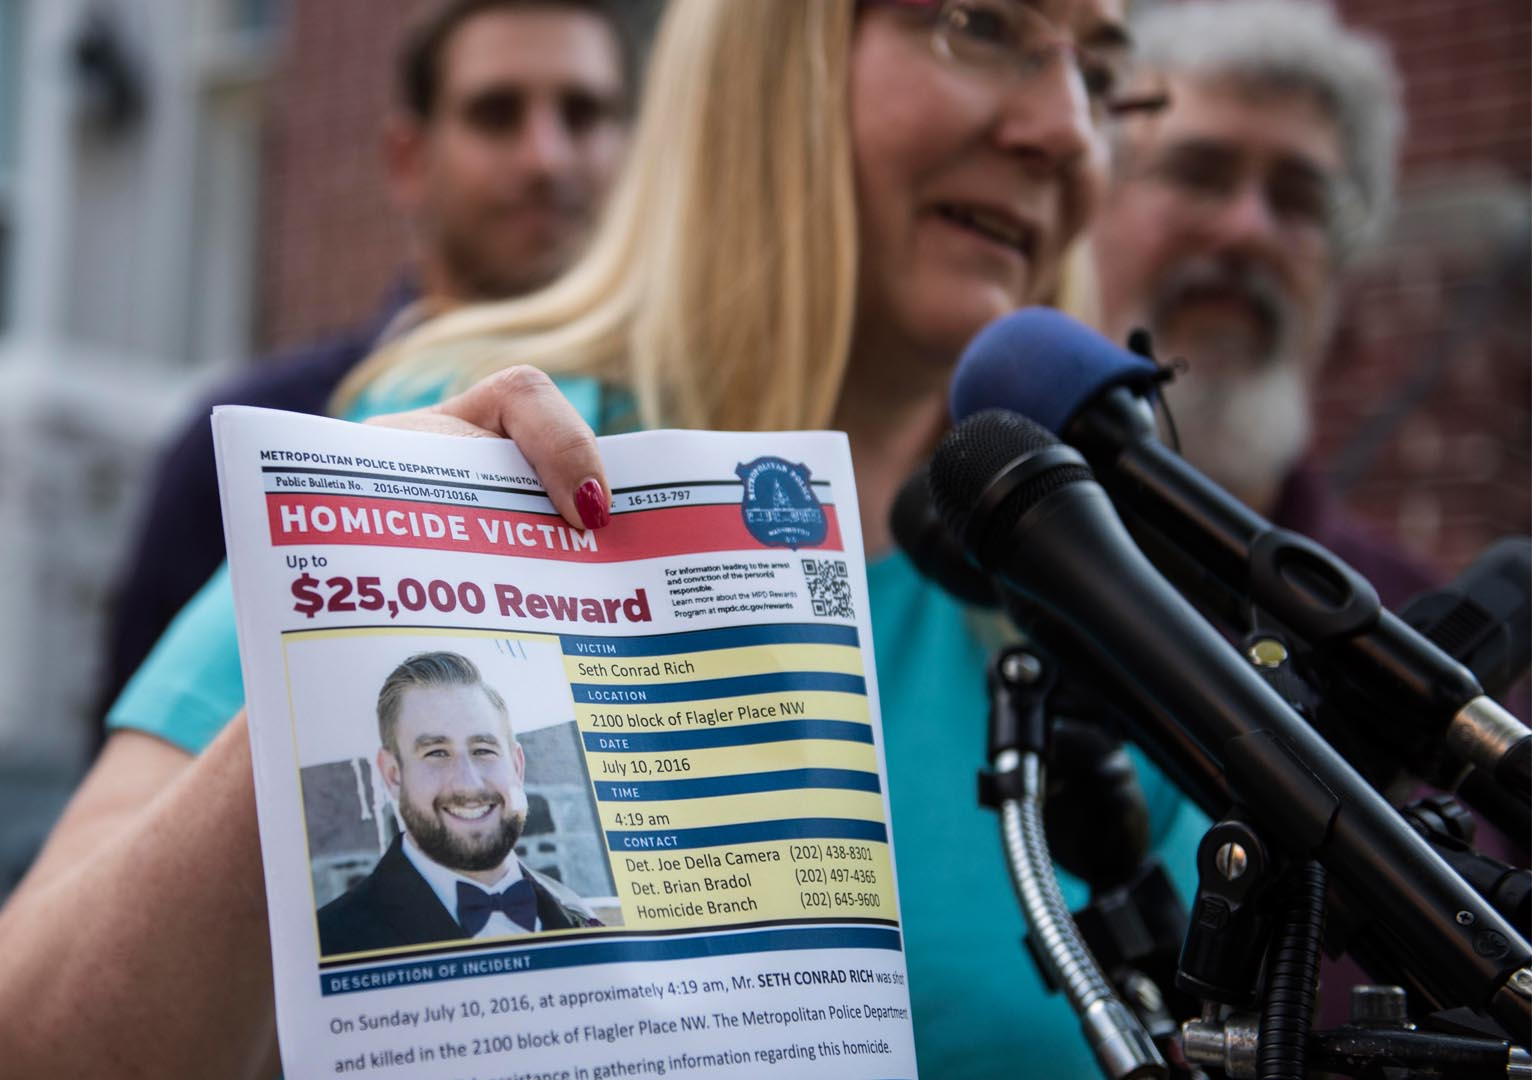 Murdered DNC Staffer's Family Demands Retraction From Fox News Over WikiLeaks Claims